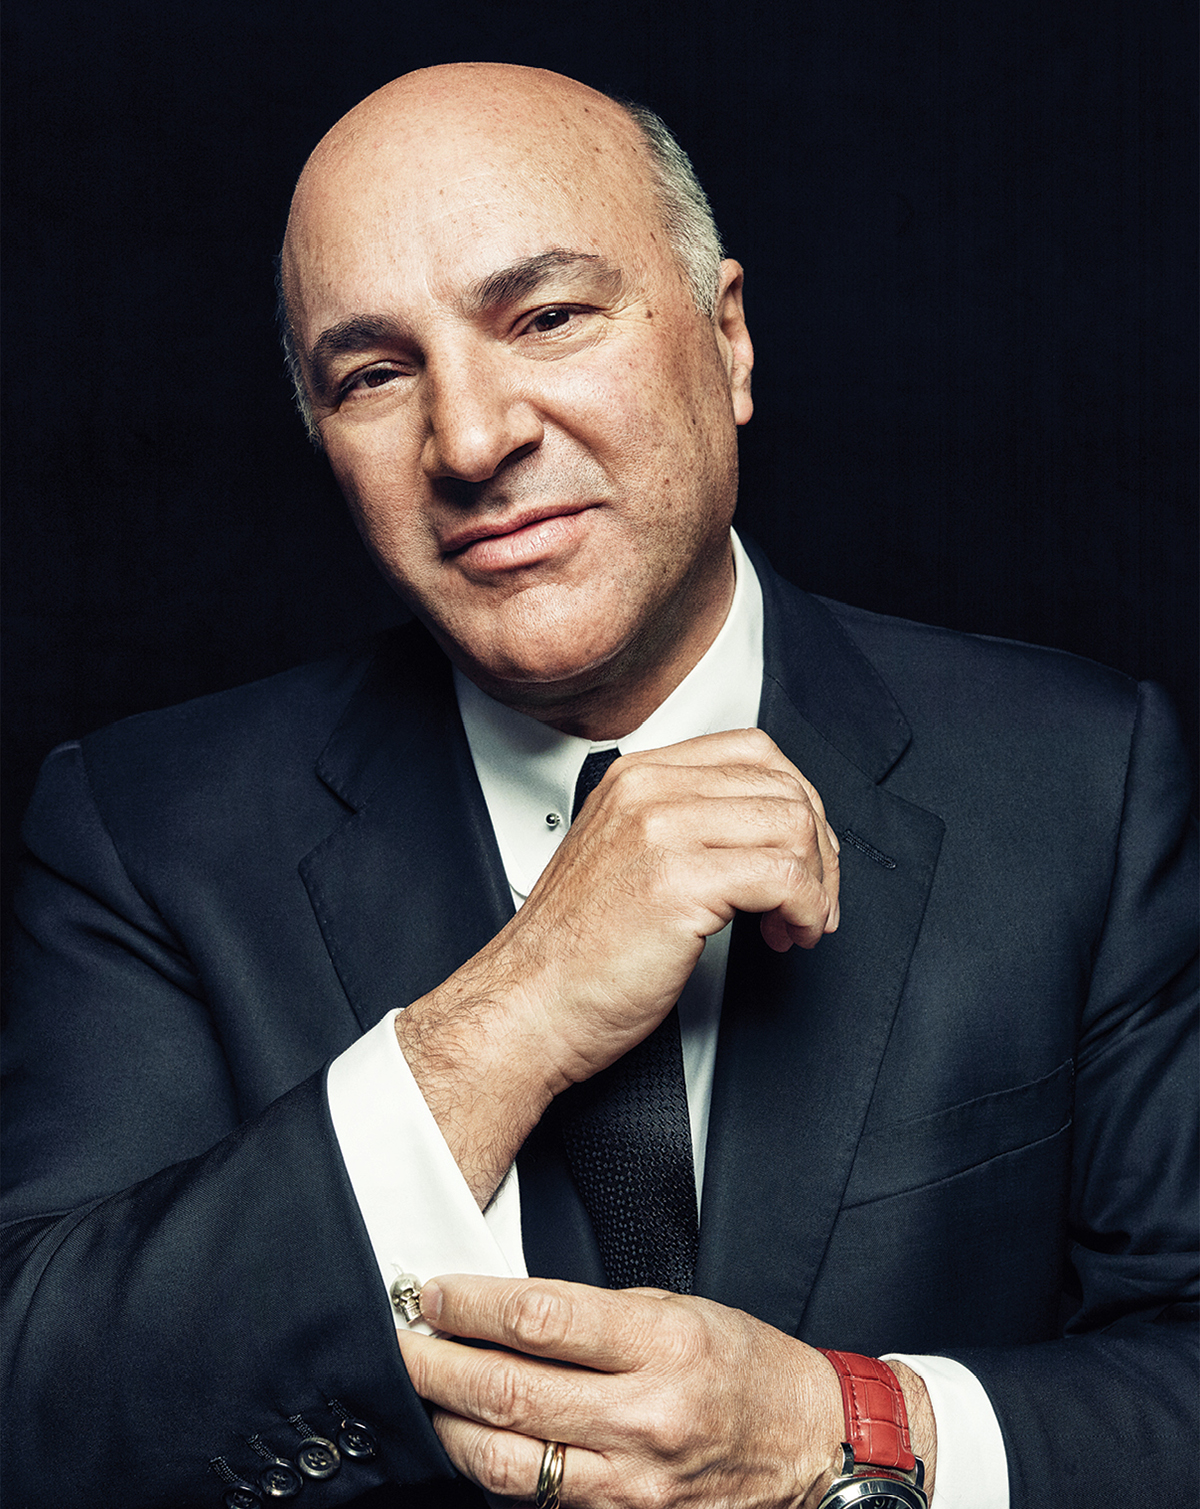 Kevin O Leary On Women Wine And Shark Filled Waters Not To Mention Yorkville